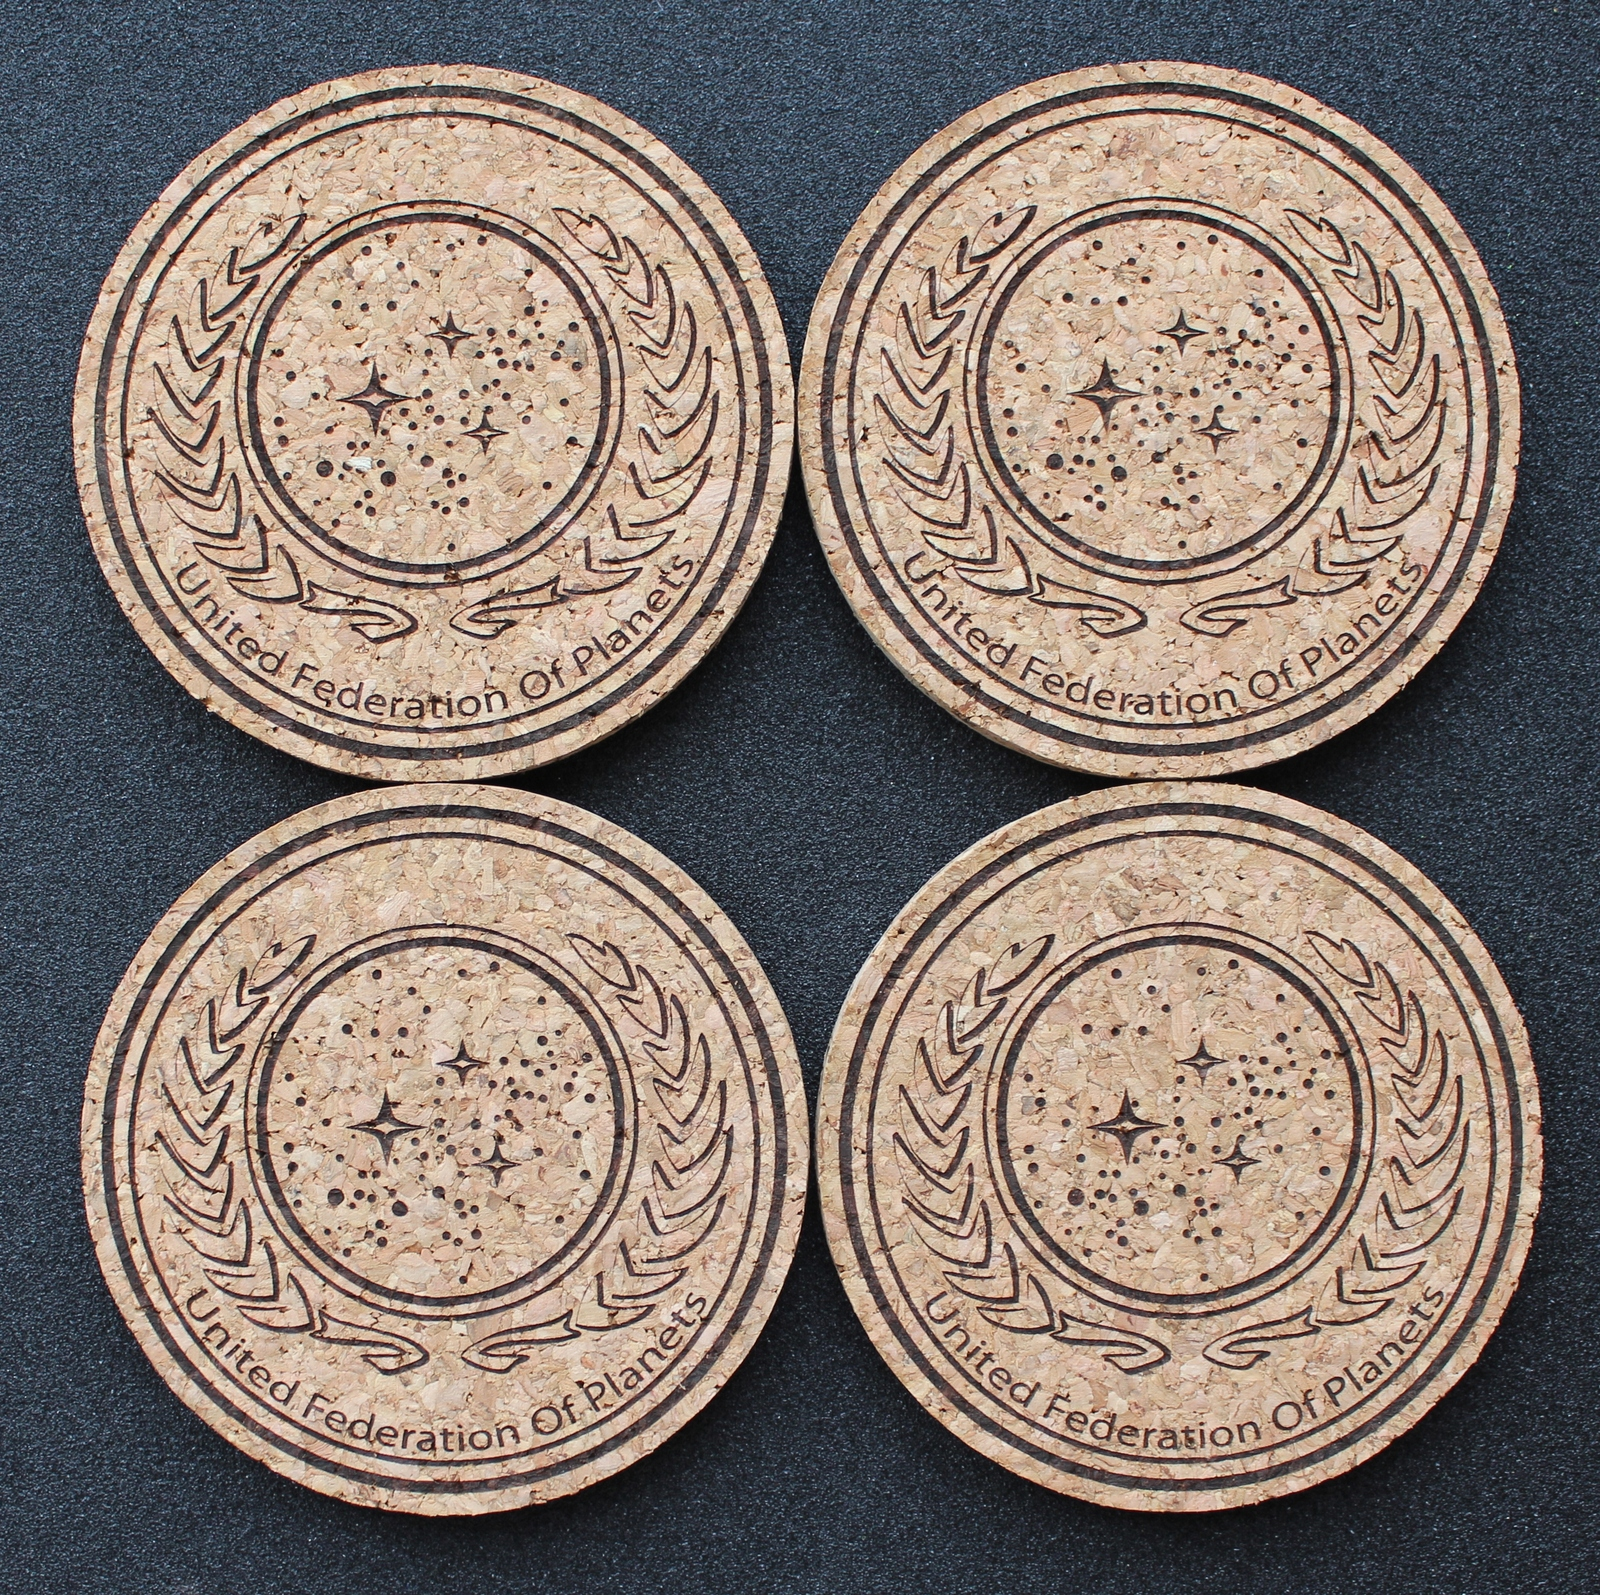 Primary image for United Federation of Planets - laser engraved cork coasters - set of 4